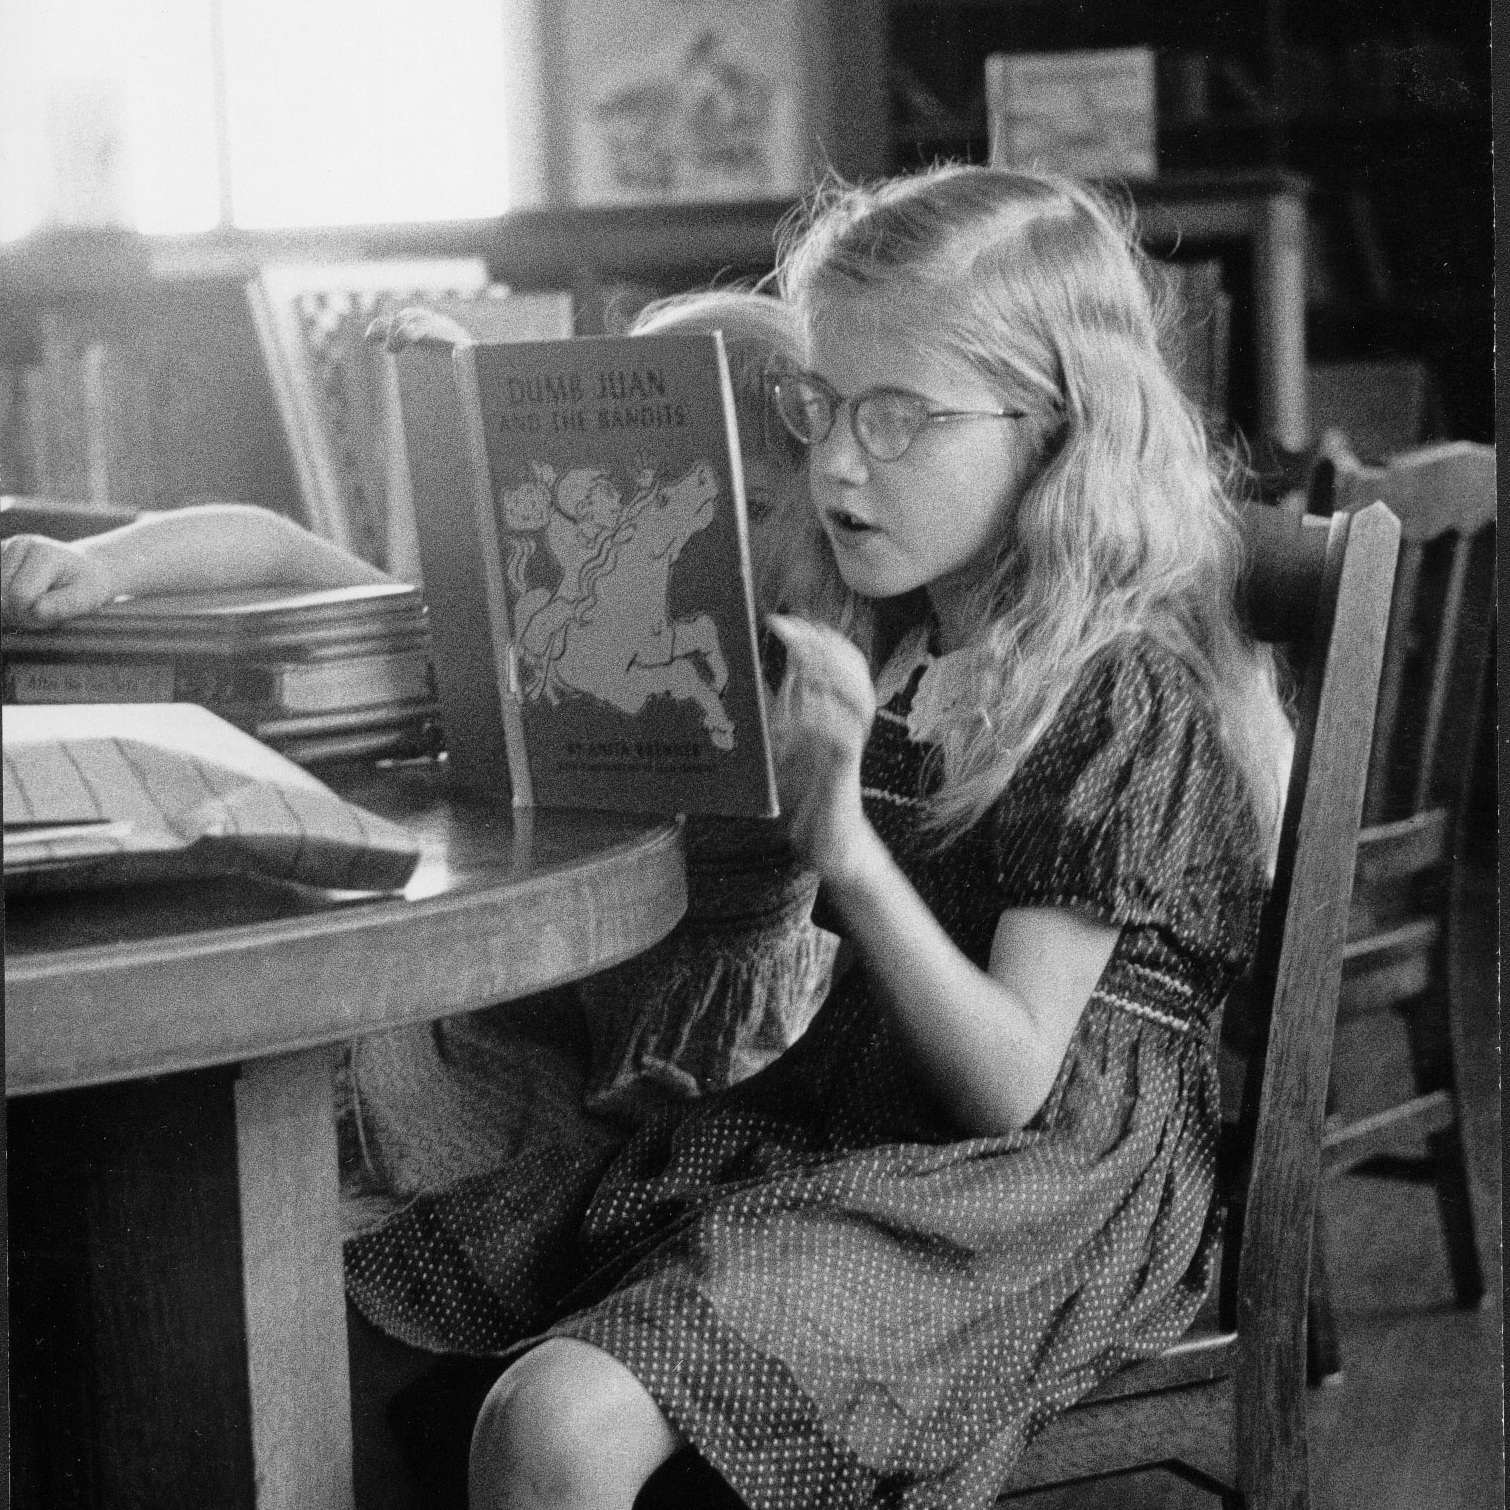 Elizabeth Partridge at the Berkeley Public Library, age 9